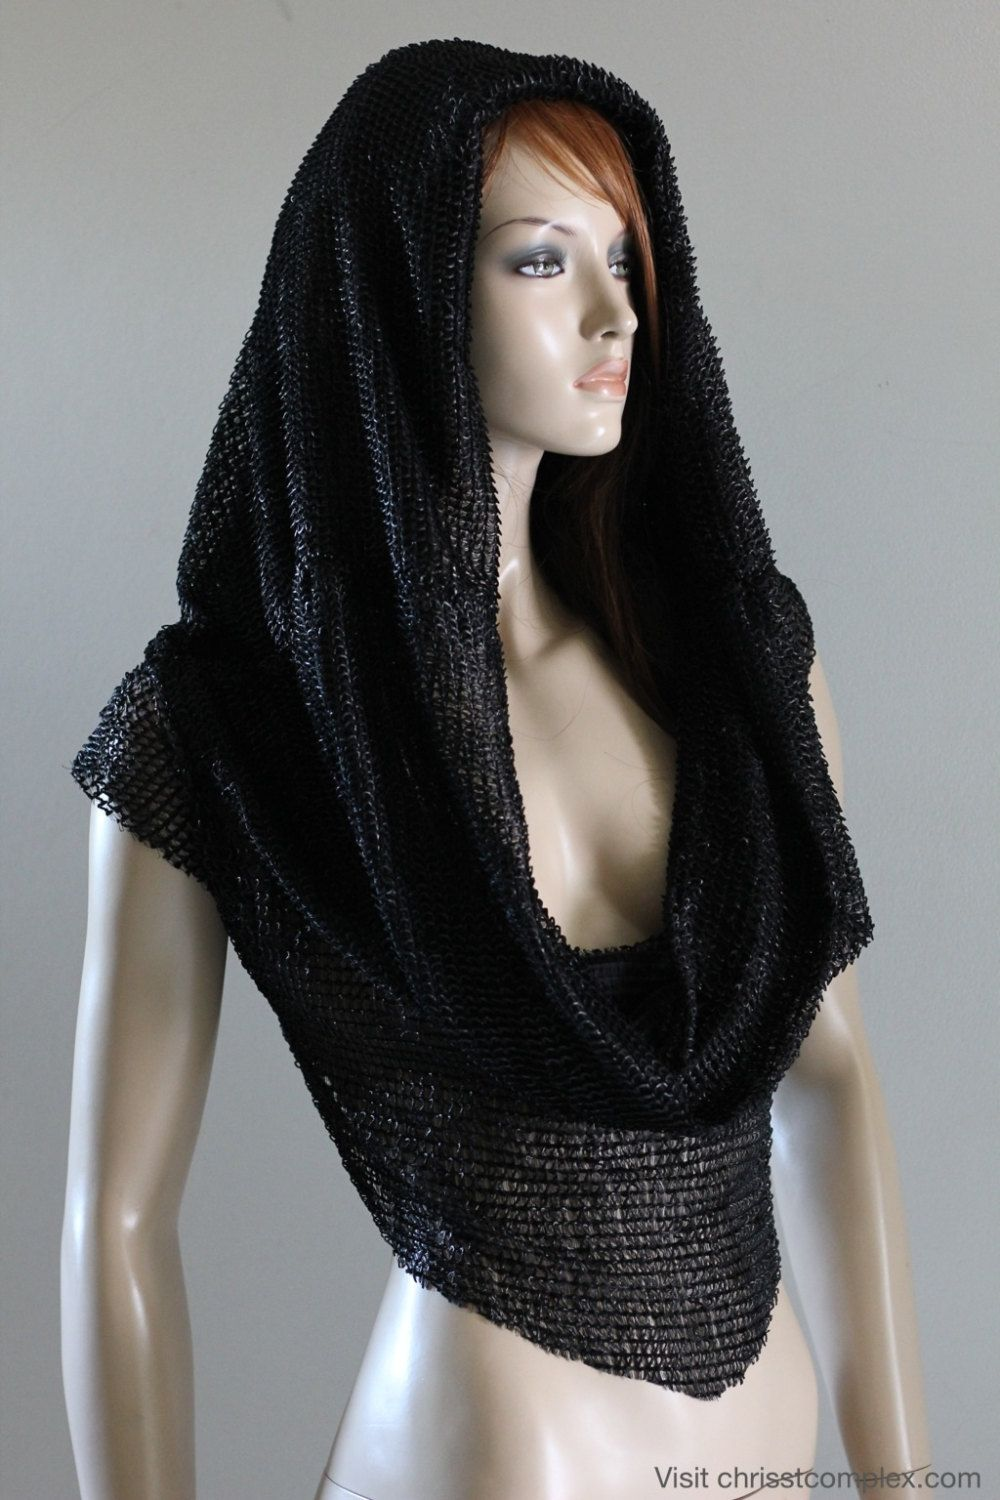 Medieval Hood Scarf Top on Etsy. Character costume inspiration #writing #nanowrimo